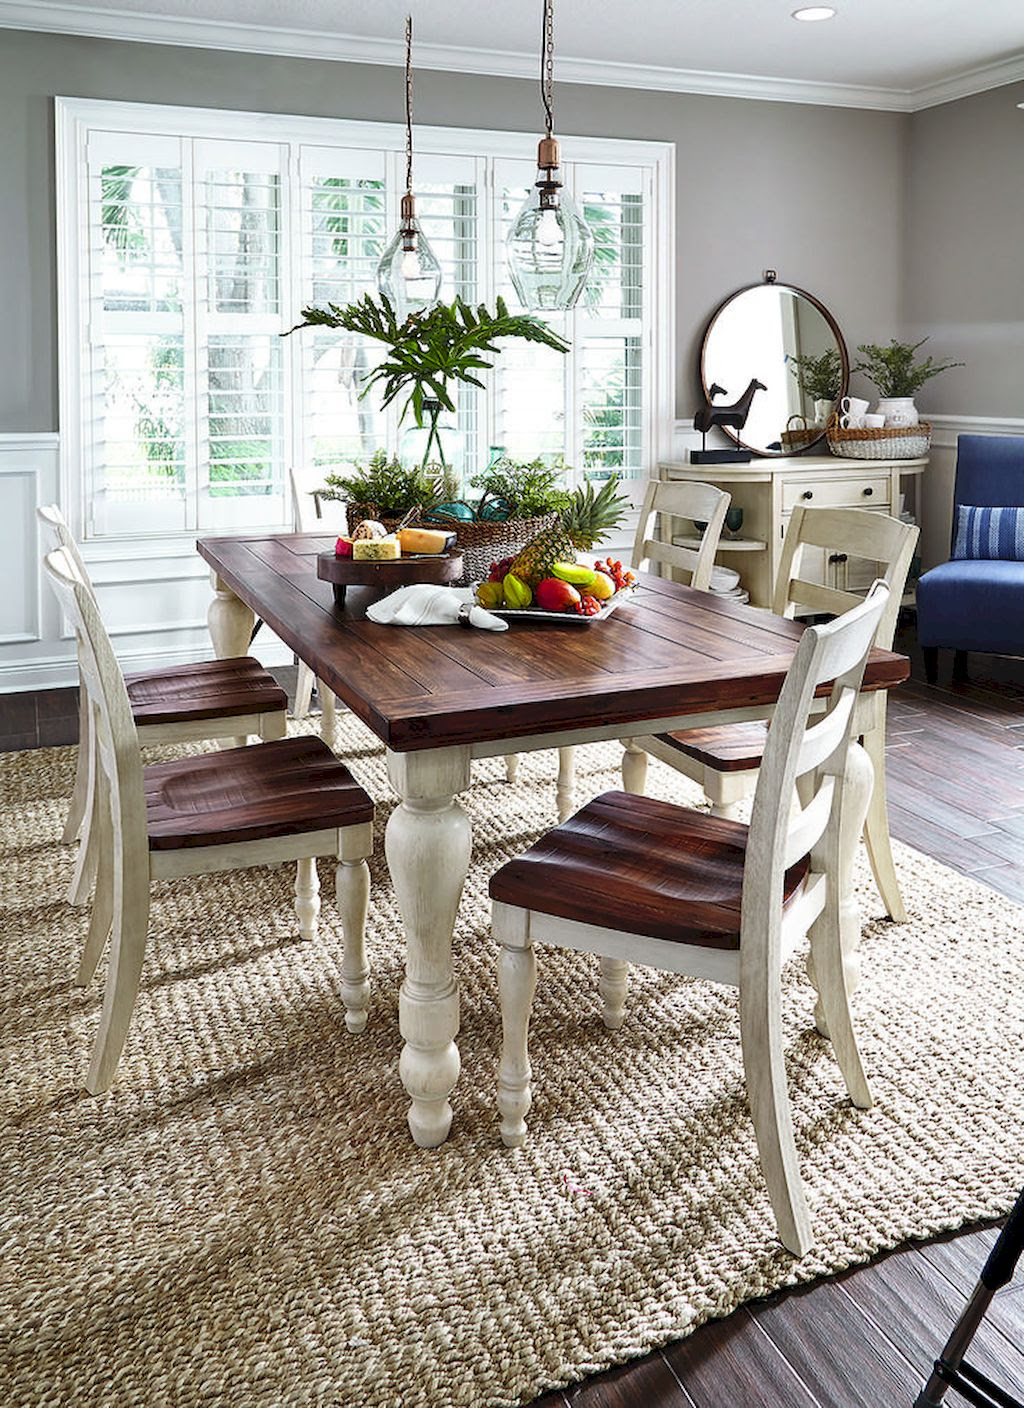 65 Timeless Farmhouse Dining Room Table and Decorating ...